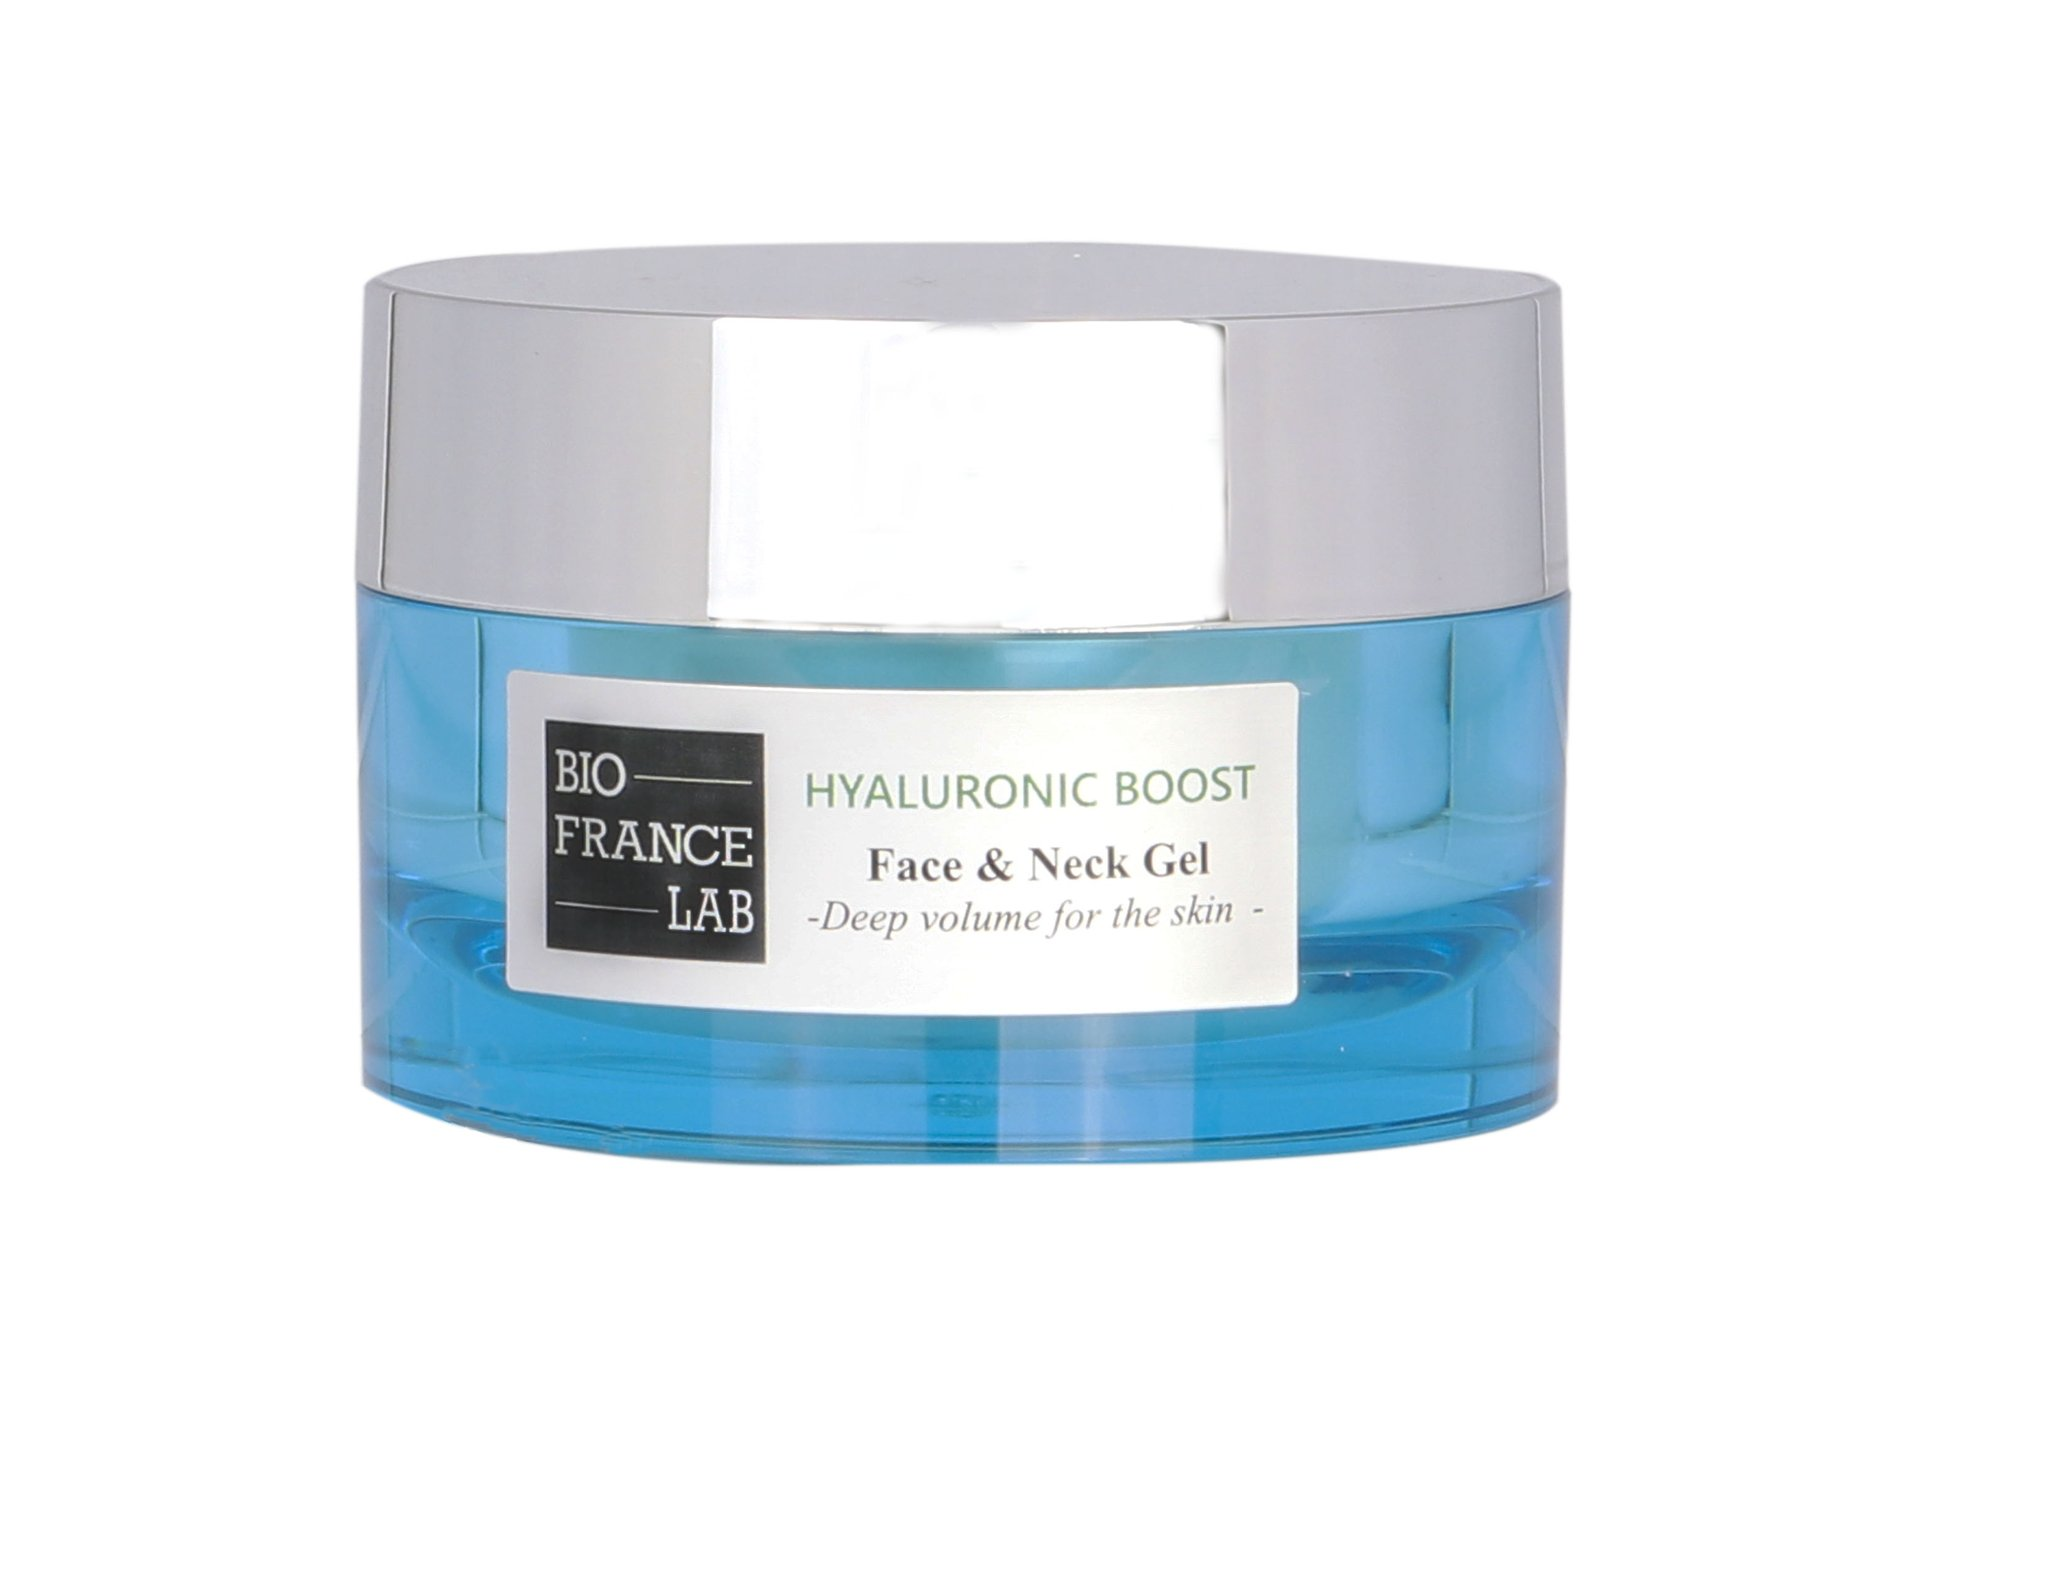 HYALURONIC_BOOST_FACE_NECK_GEL_1024x1024@2x